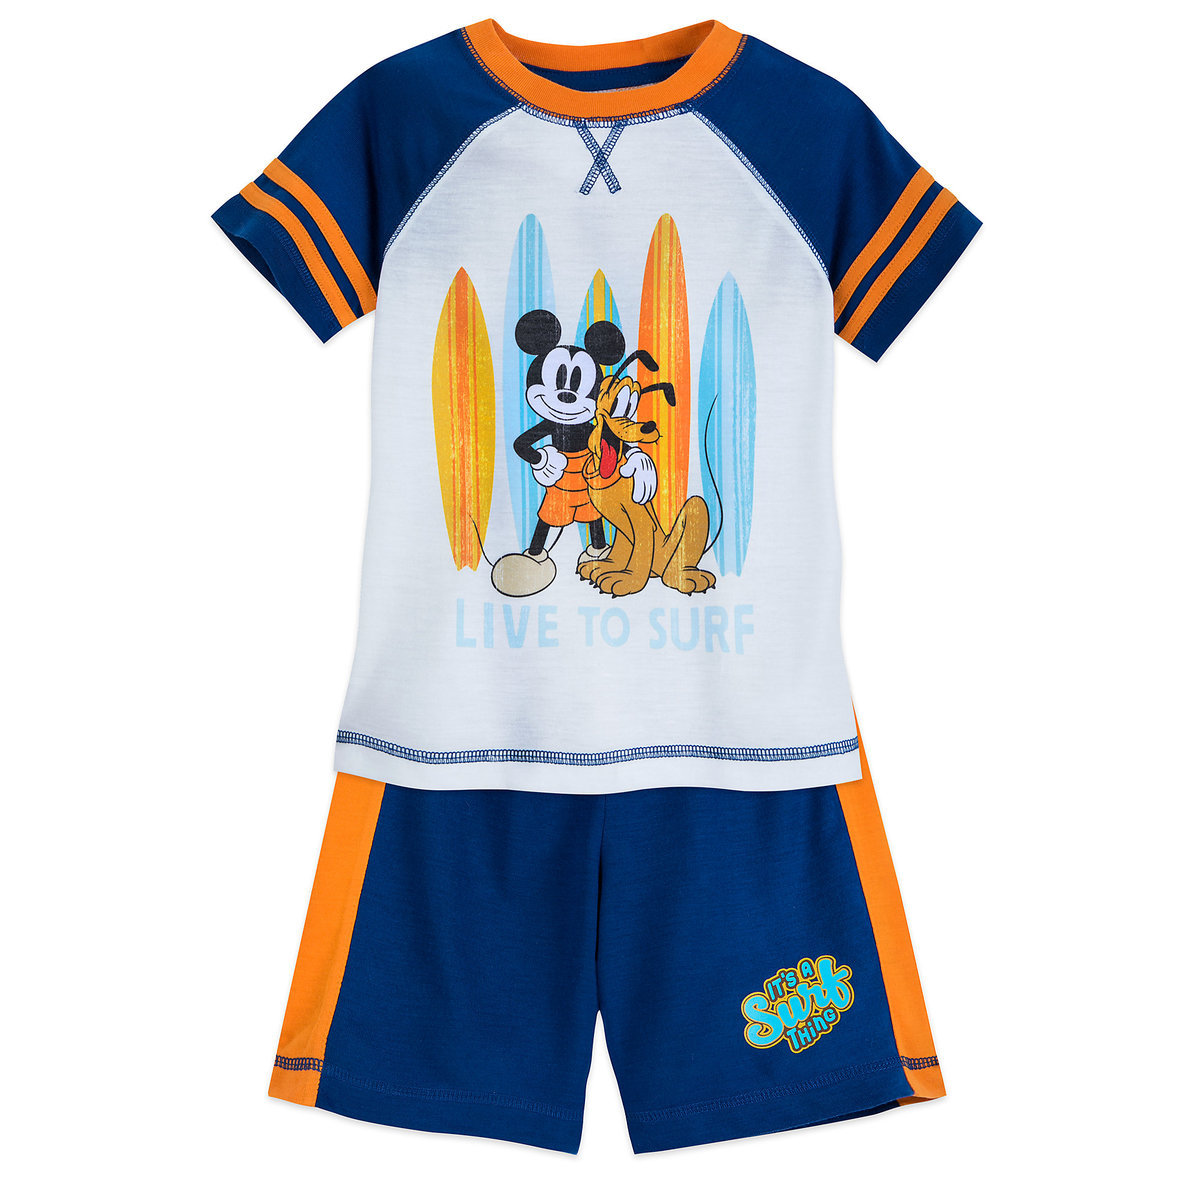 Product Image of Mickey Mouse and Pluto ''Surf'' Shorts Sleep Set for Boys # 1